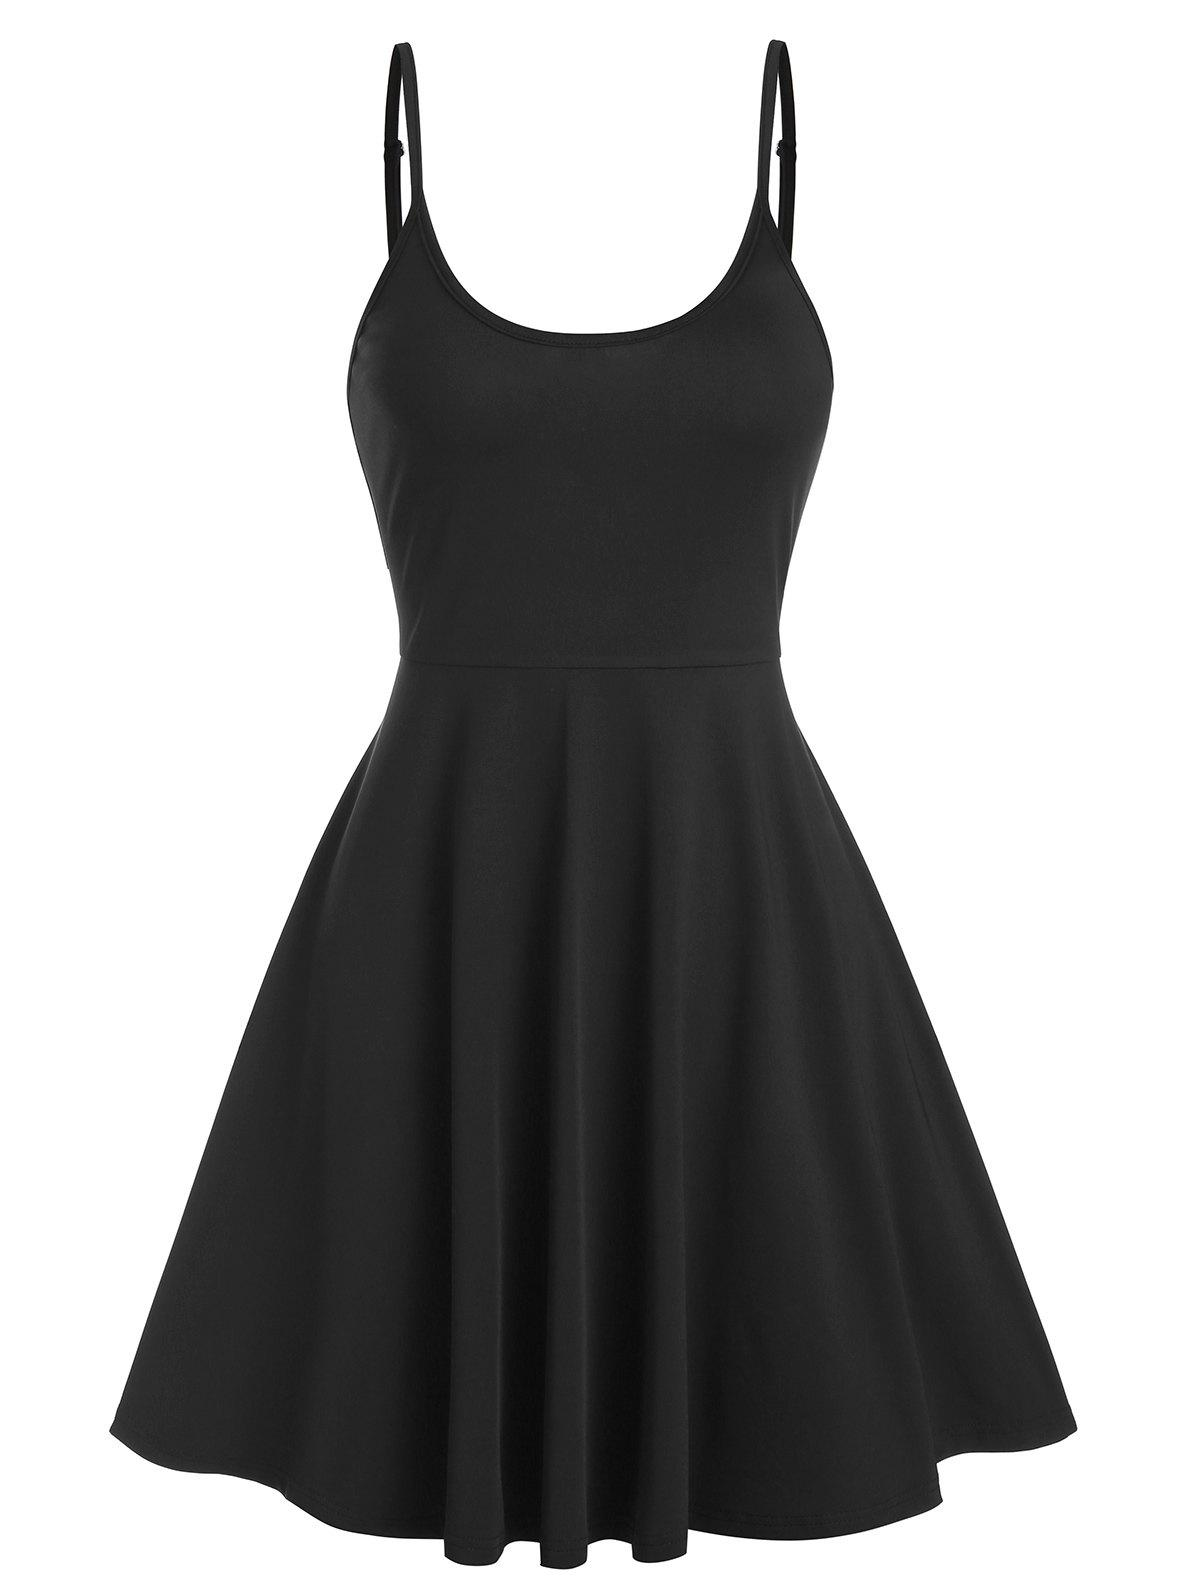 Robe Evasée Simple à Bretelle Fine - Noir XL